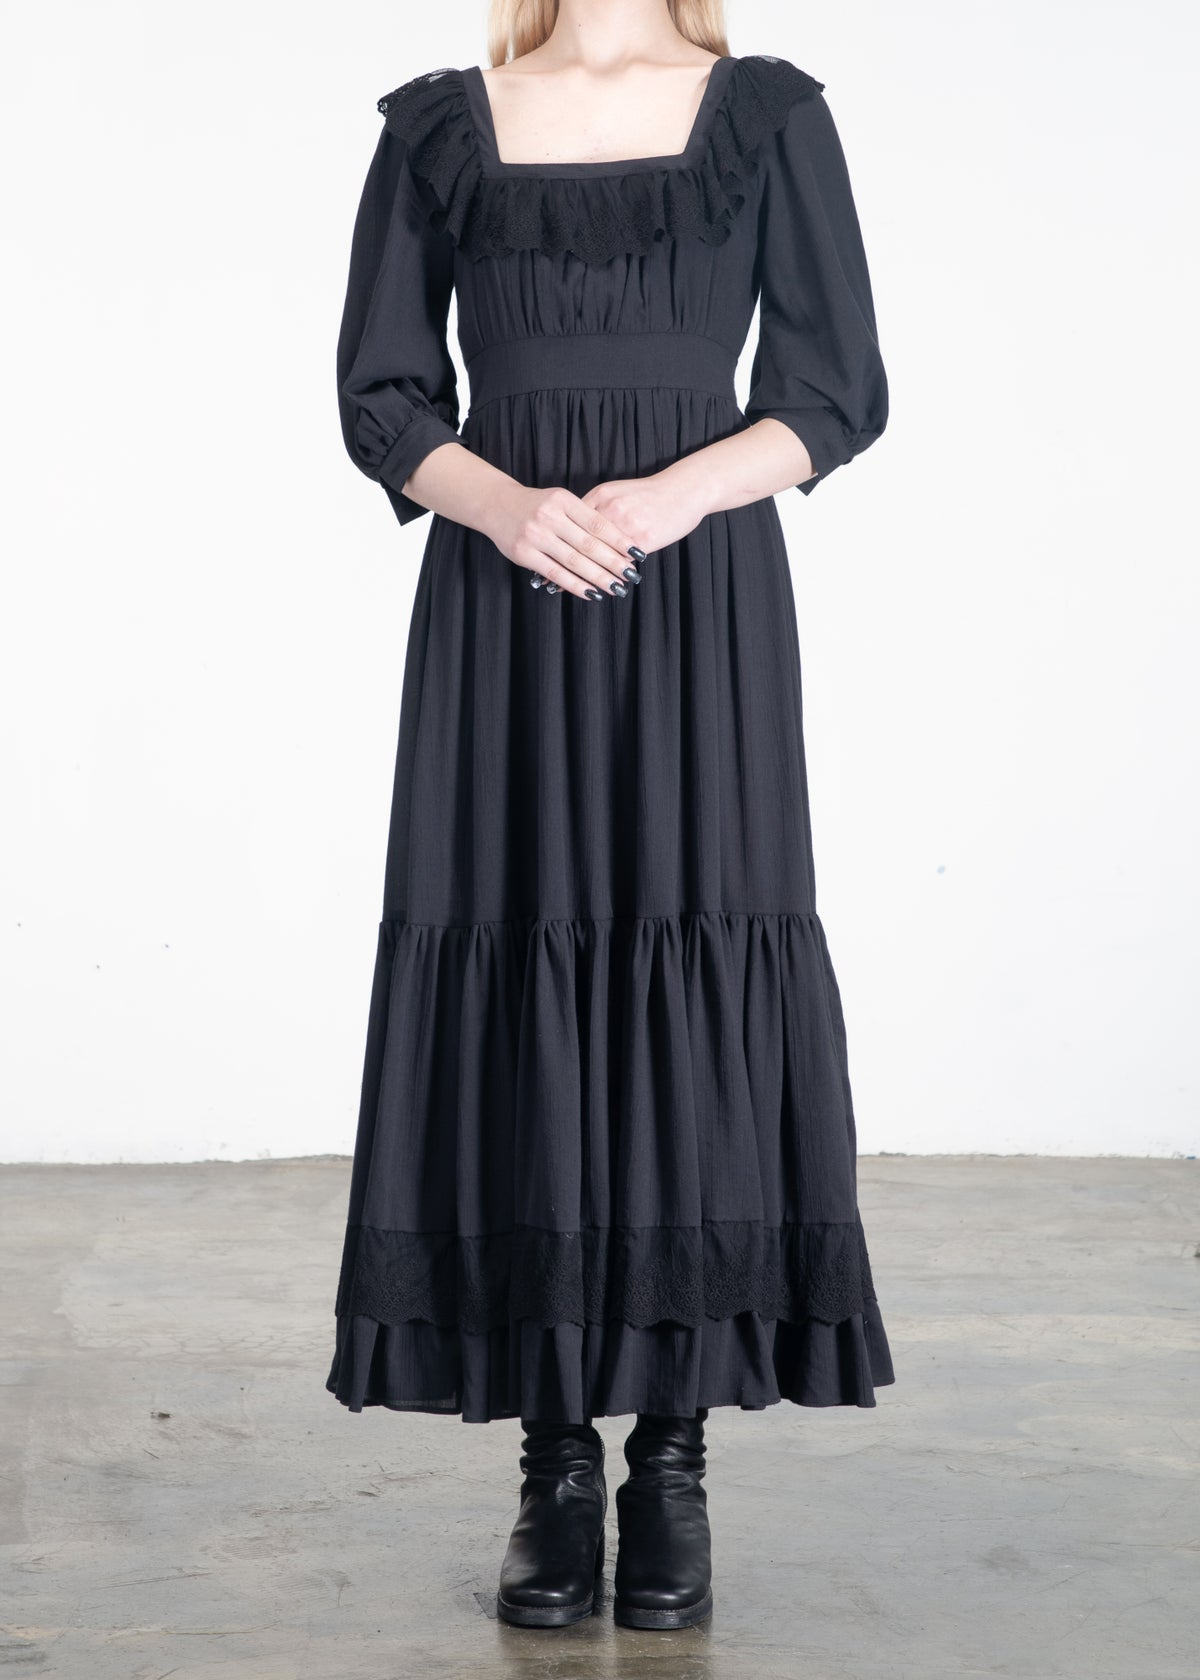 Image of Isabelle Lace Ribbon Neckline Long Dress Black